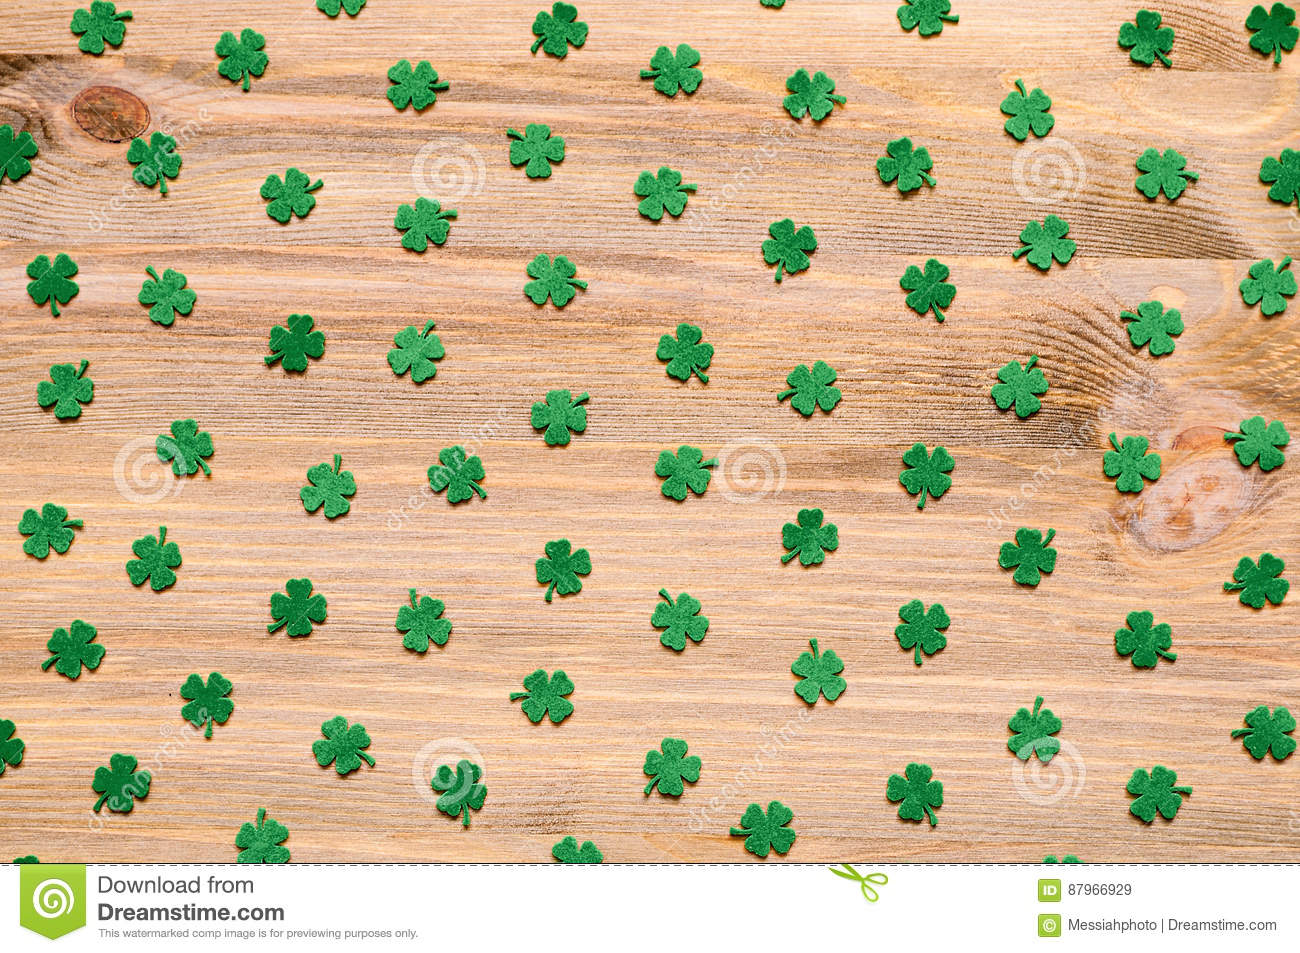 St Patricks Day background with green quatrefoils on the wooden background